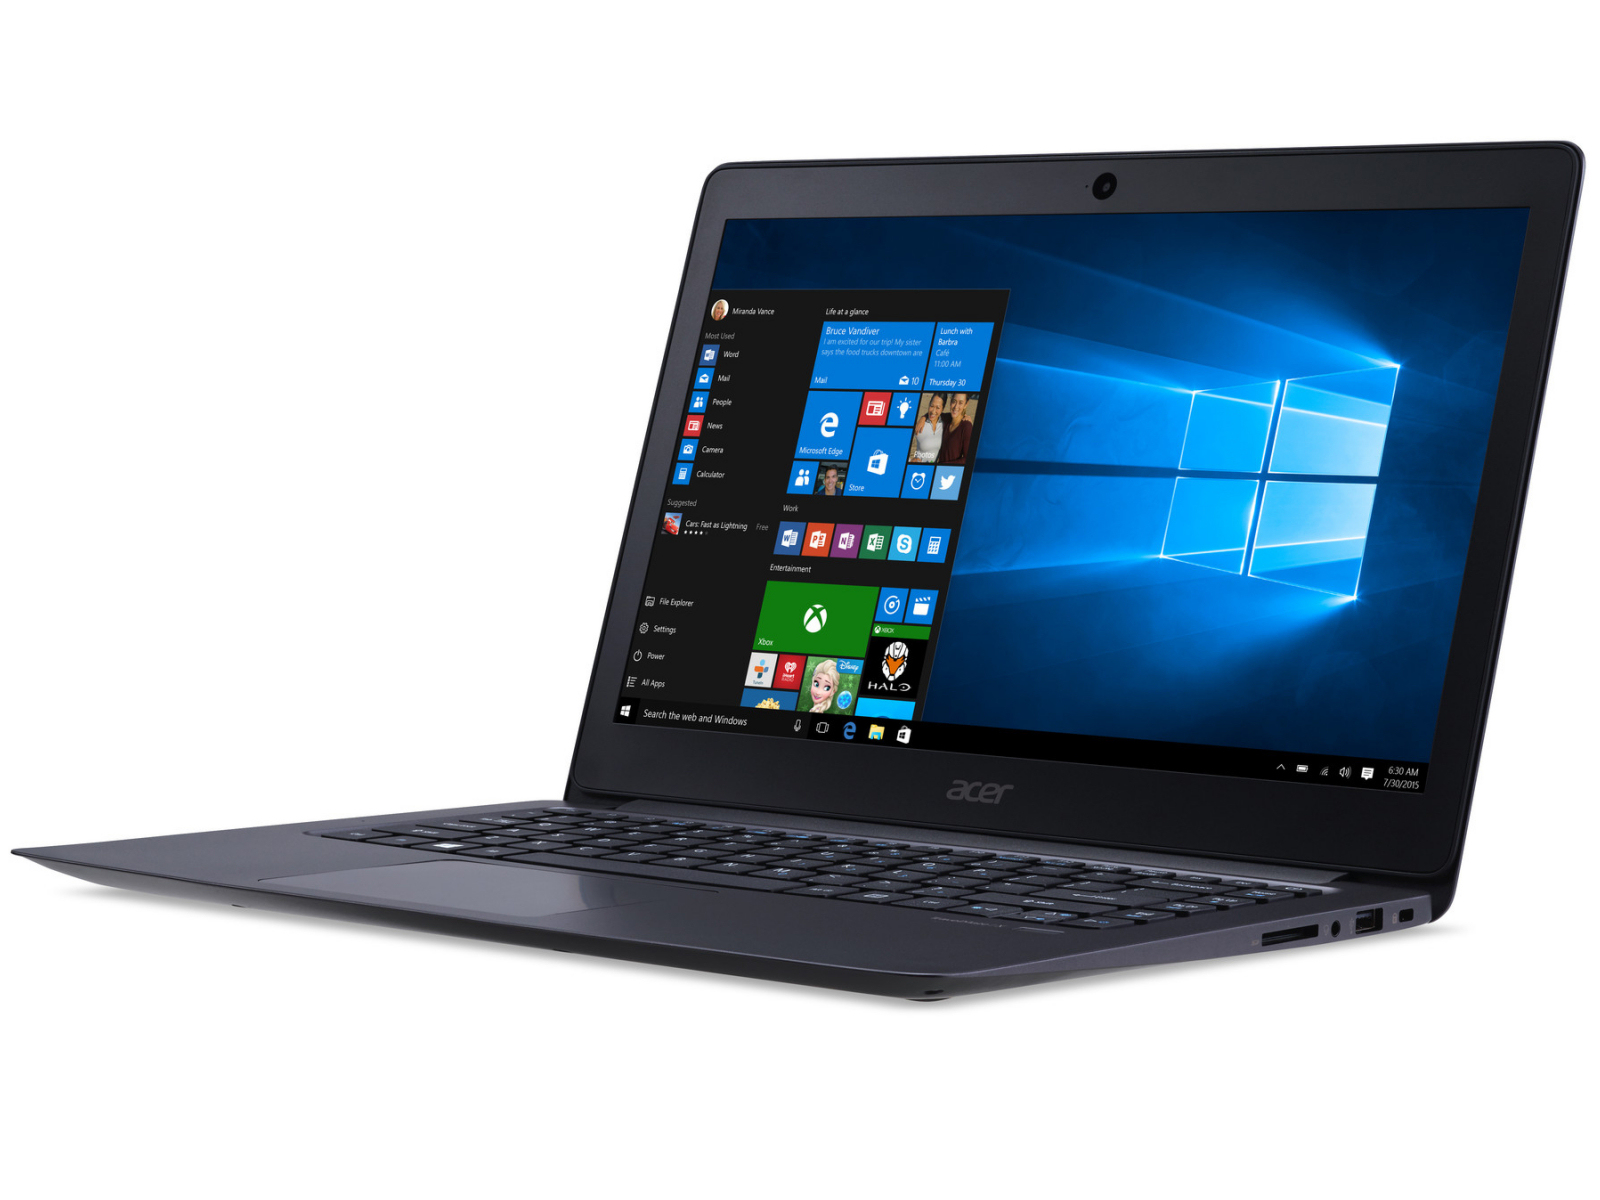 ACER TRAVELMATE 8000 SMART CARD WINDOWS 7 DRIVERS DOWNLOAD (2019)